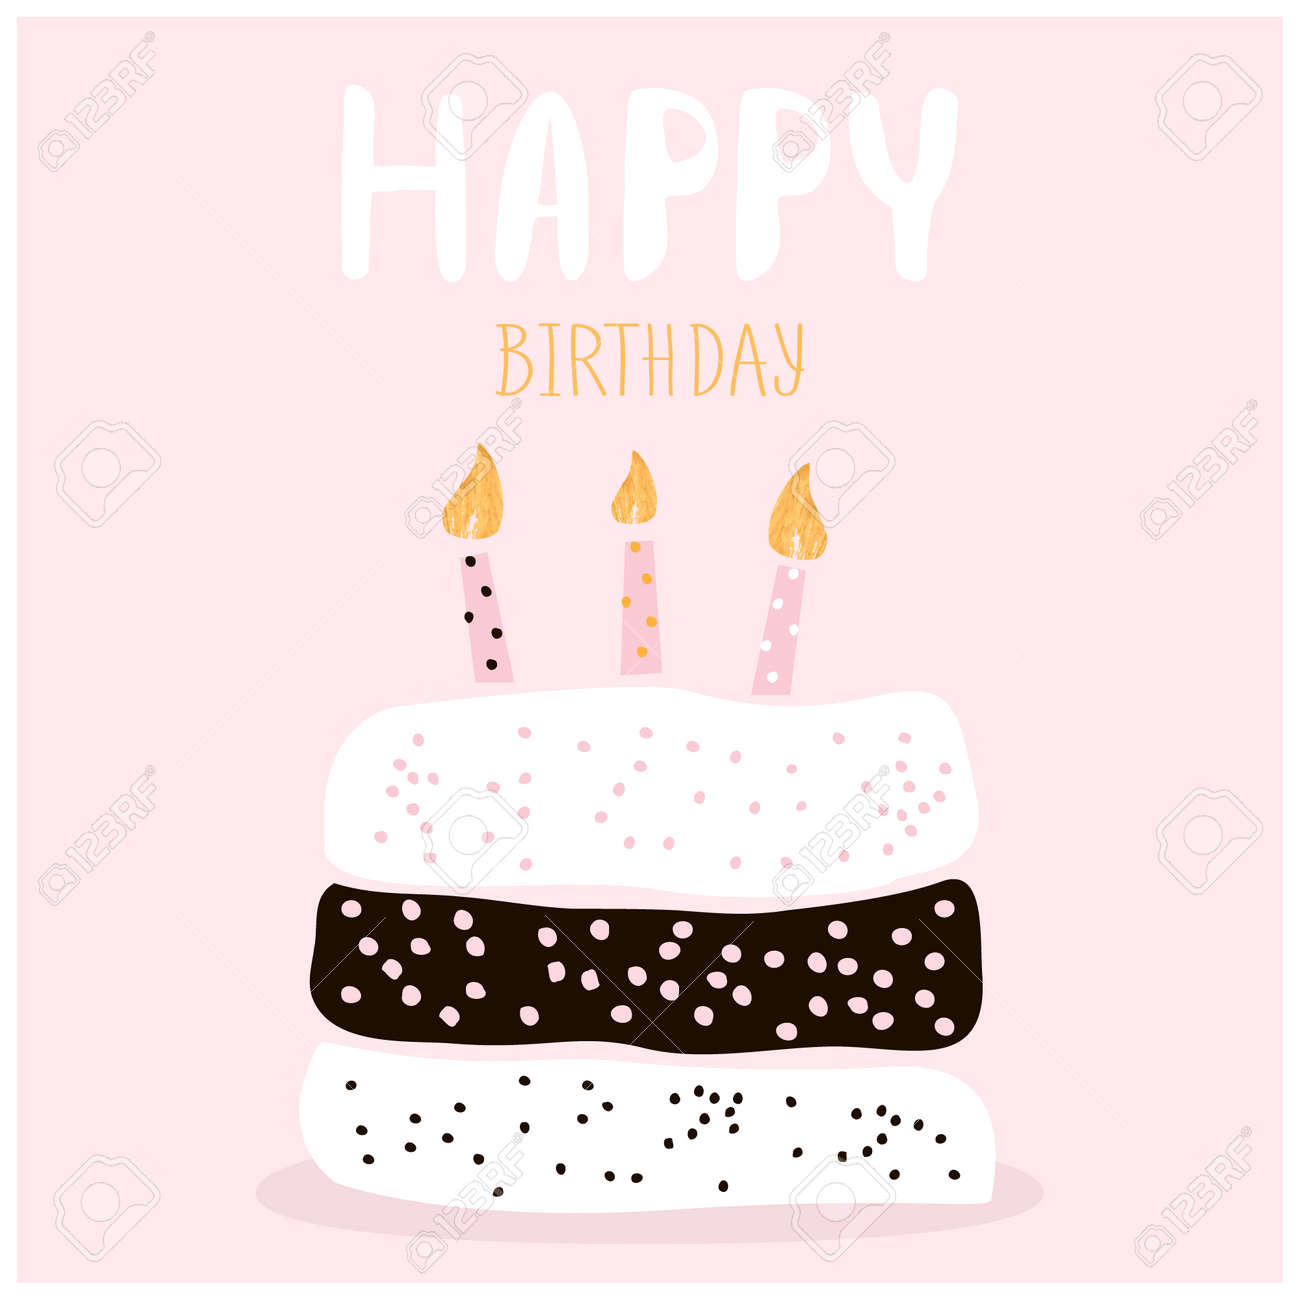 Superior Cute Cake With Happy Birthday Wish. Greeting Card Template. Creative Happy  Birthday Background.